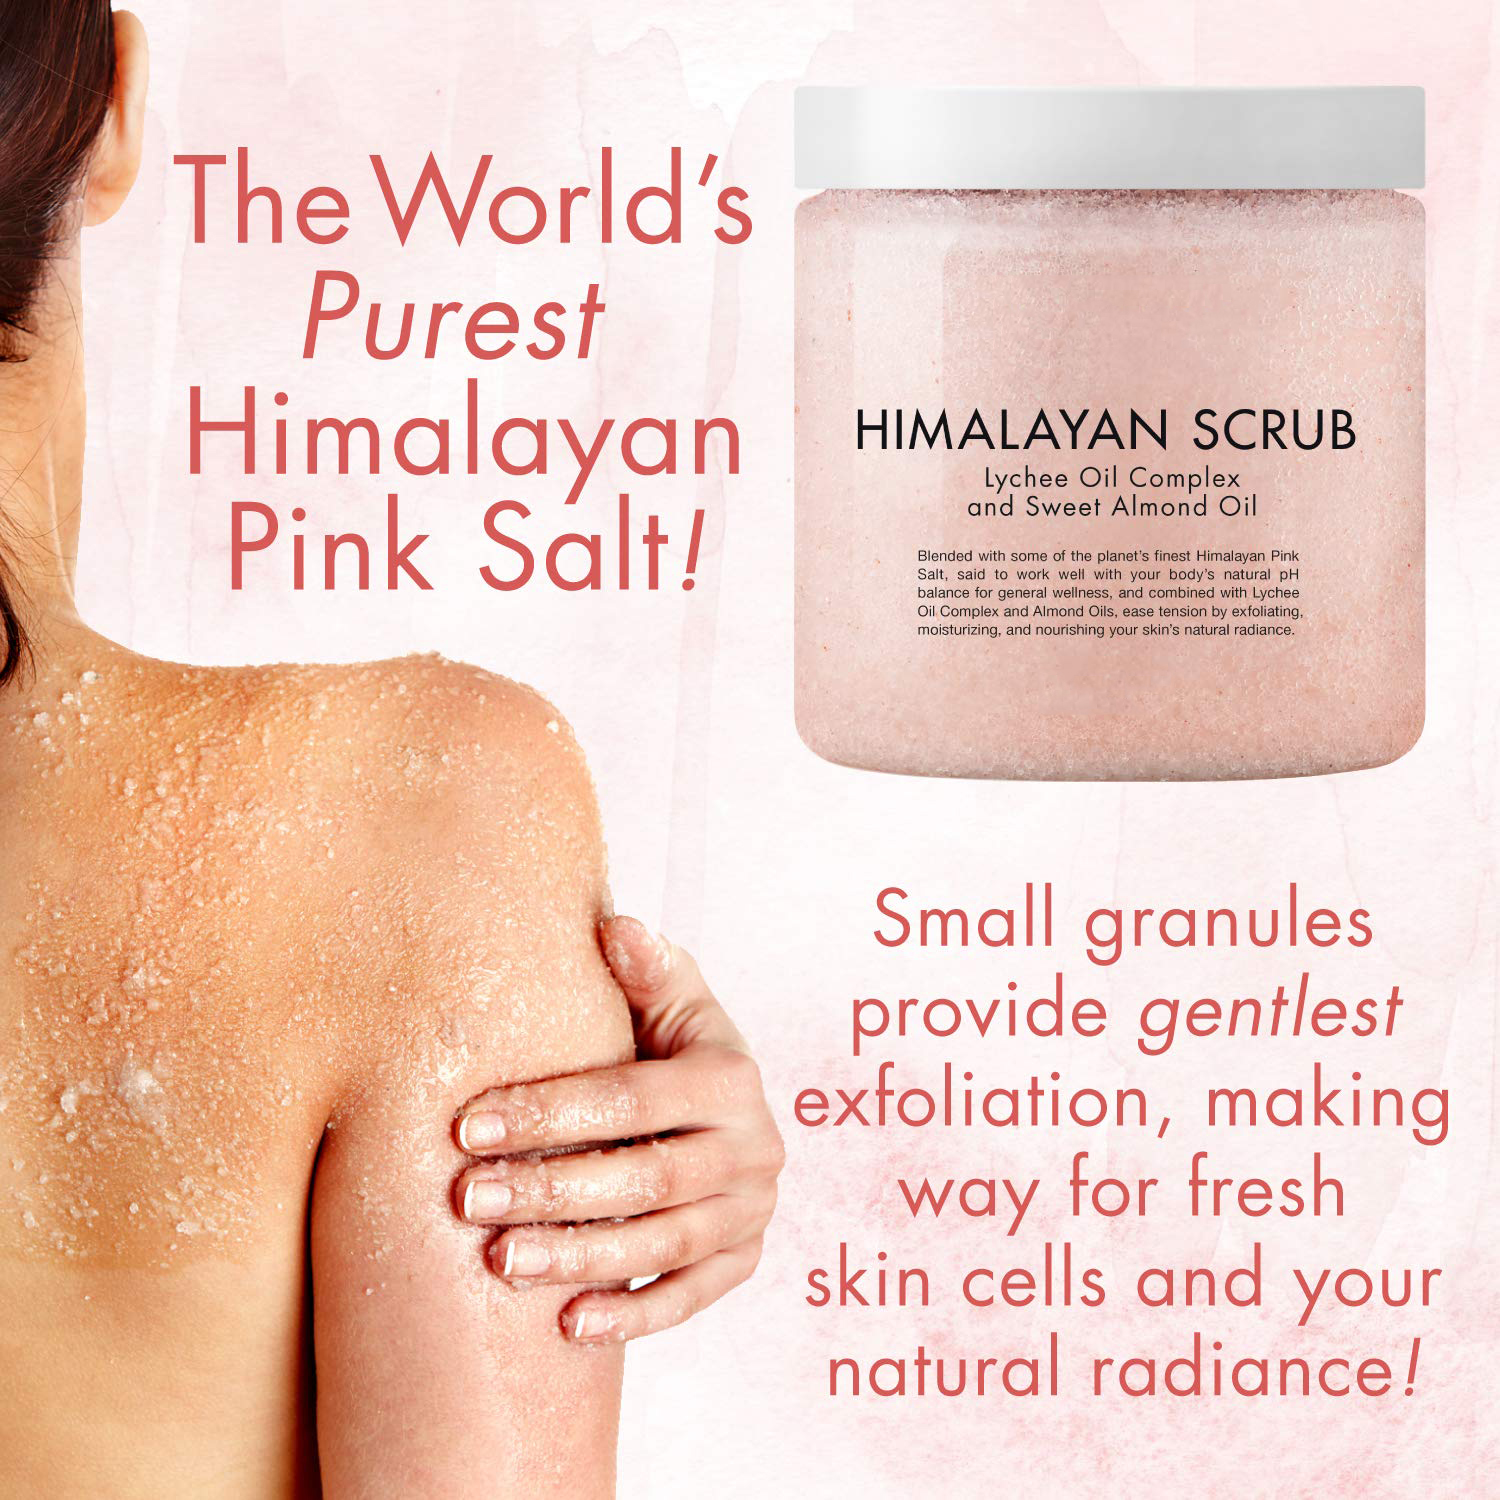 private label exfoliator 100% natural himalayan pink salt body scrub with sweet almond oil moisturizes